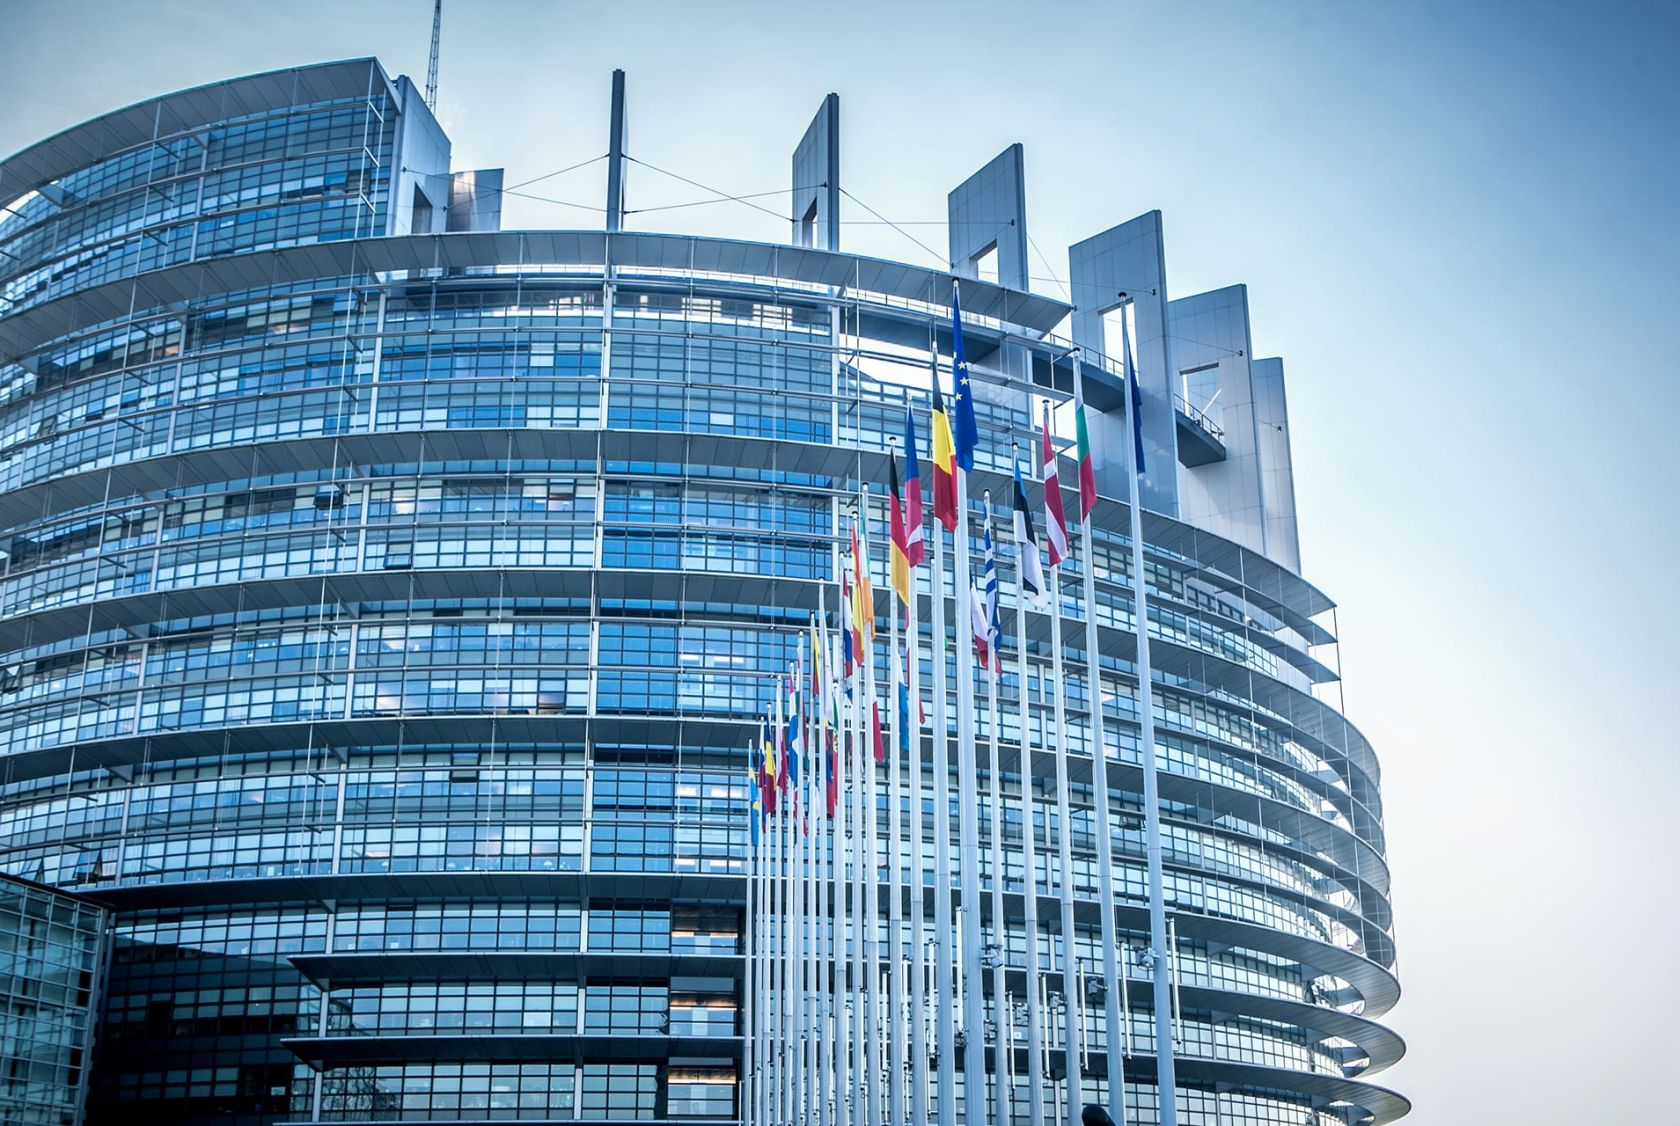 A guide through the EU institutions labyrinth